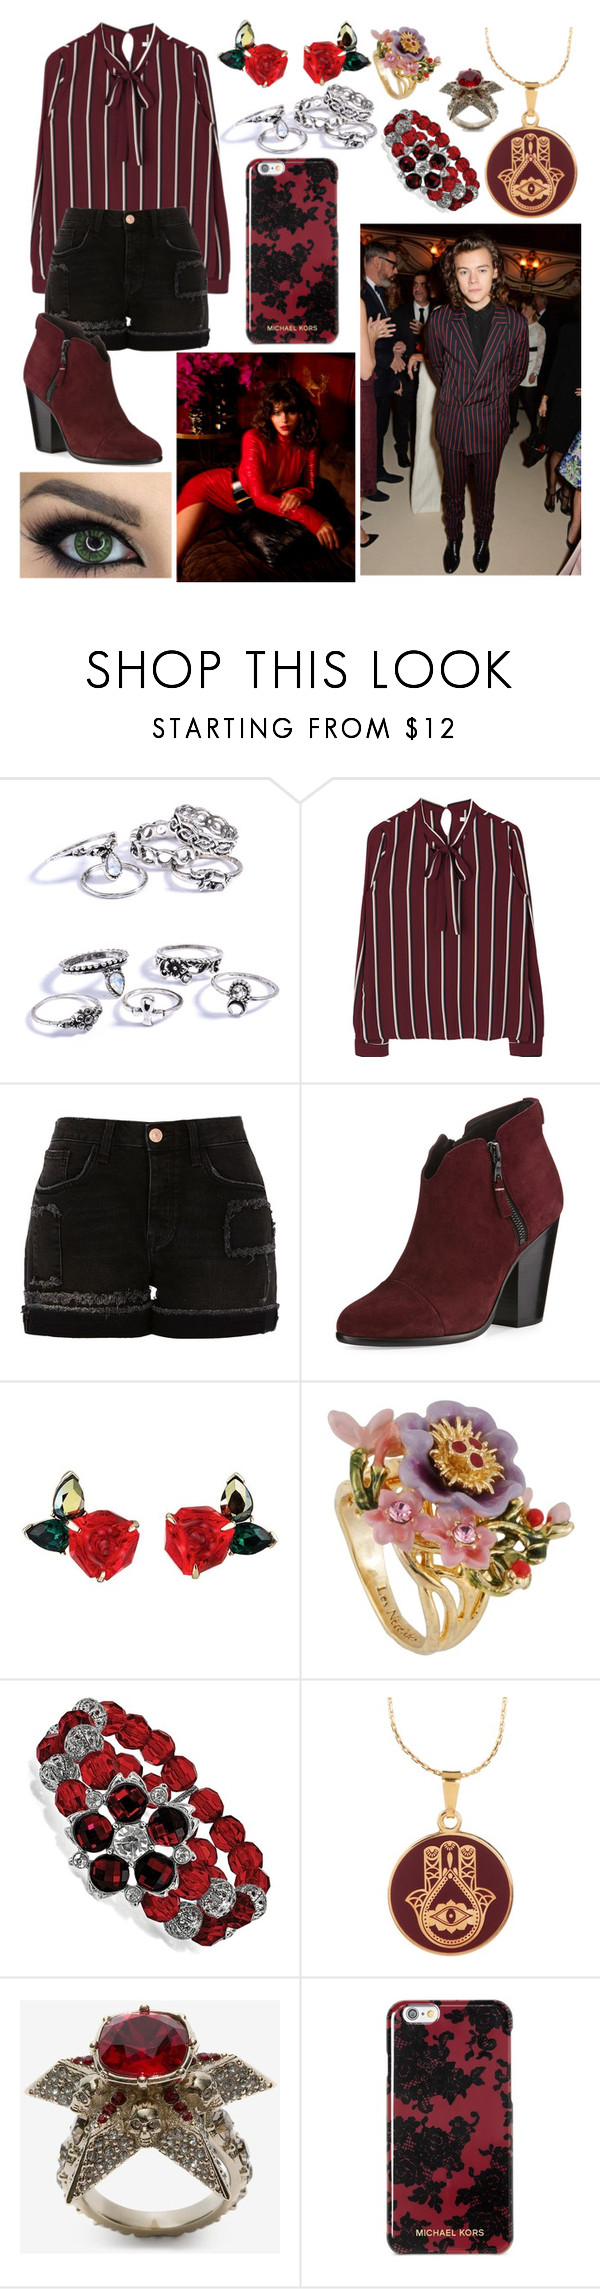 """""""SOOz."""" by nerdyhesc ❤ liked on Polyvore featuring River Island, rag & bone, Les Néréides, 1928, Alex and Ani, Alexander McQueen and Michael Kors"""